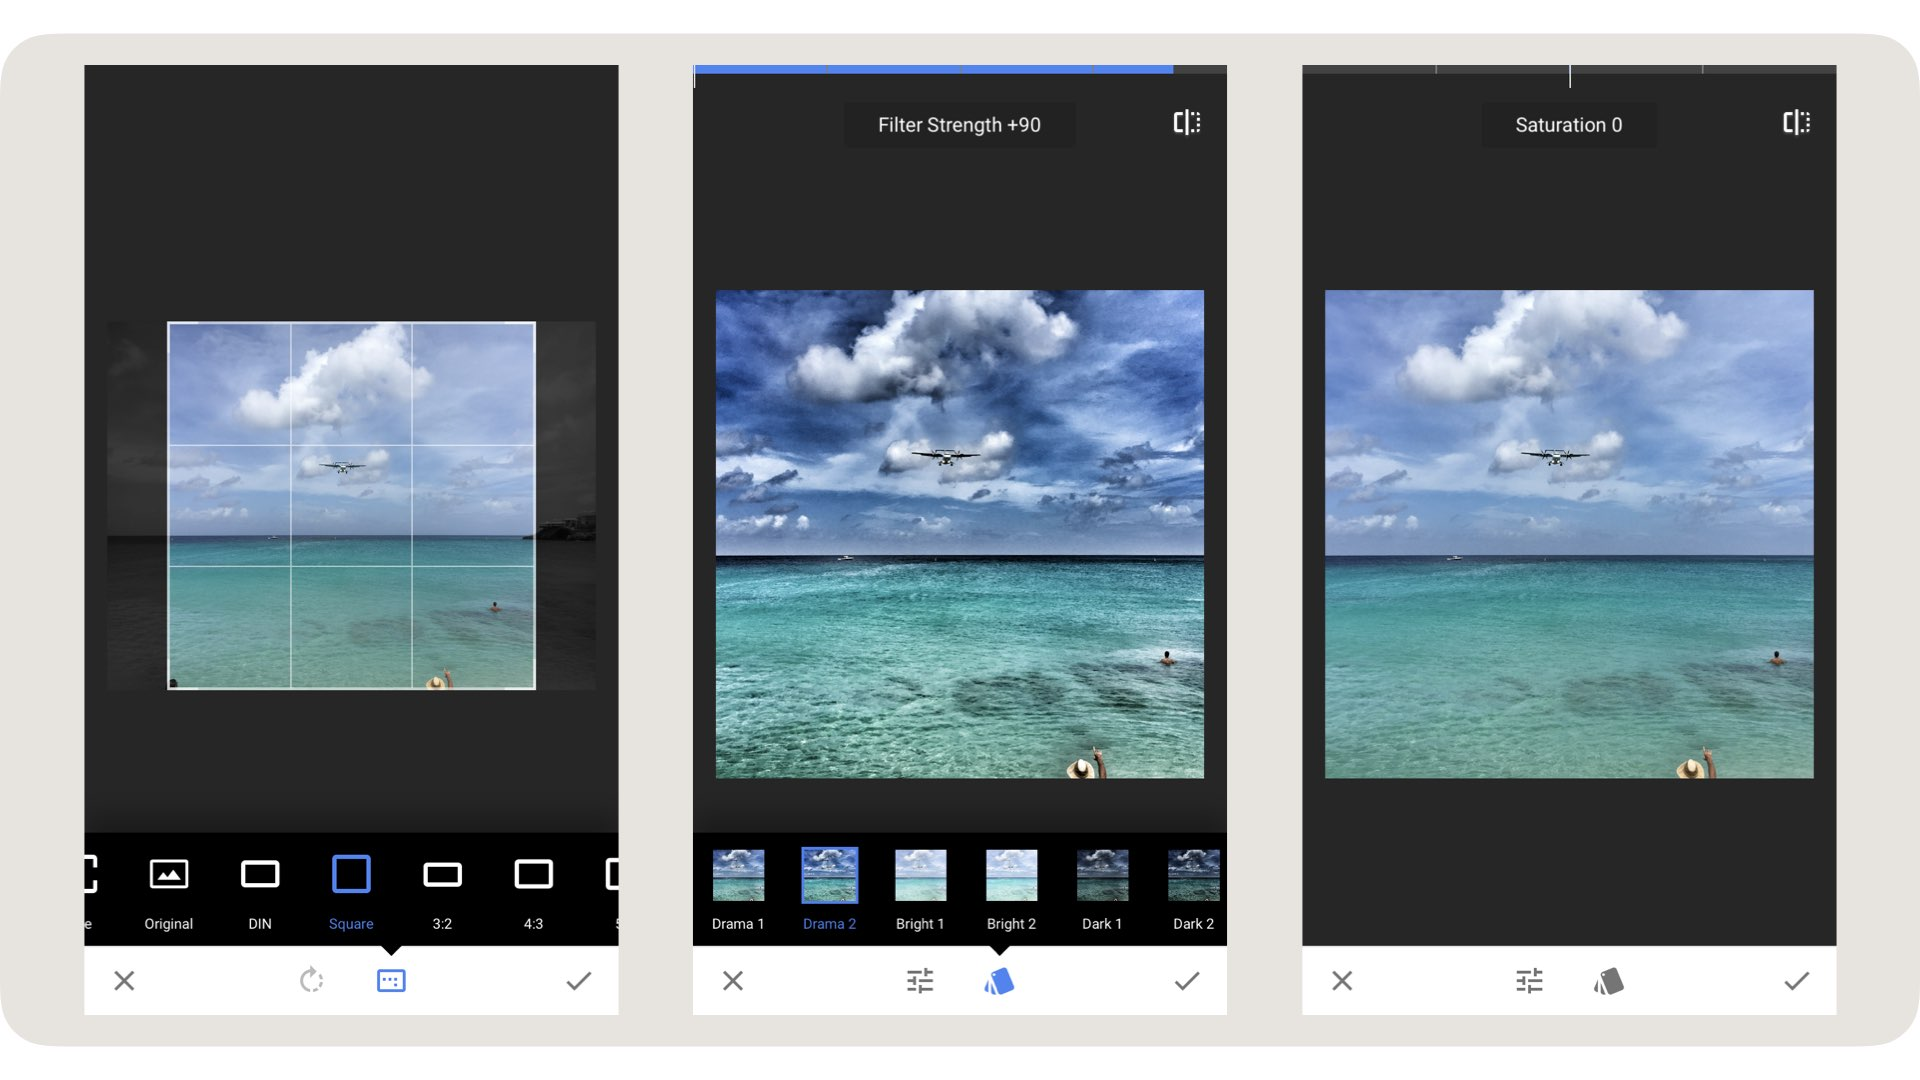 smartphone editing tips, smartphone editing tutorial, smartphone photography tips, smartphone photography tricks, smartphone photography tutorials _ Last year I made an amazing journey sailing from Colombia to Portugal on the Nomad Cruise. On the way, we made one stop on Saint Maarten Island in the Caribbean. The island itself is not the most interesting place but I did want to go to the beach where the planes fly over. I'm always trying to make photos of this kind of touristic hotspots a little bit different. So I positioned myself in such a way that all the tourists on the beach would be out of my frame. When I saw this guy with the hat I knew that would be my shot. Later when I checked the image on my phone I felt a little disappointed. The photo did not reflect my experience of being on that beach at all. It has a couple of flaws. Most embarrassing one being my finger in front of the lens. But that is not the only thing. The colors and contrasts are flat and there are more distracting elements. But I could see the potential. So I started to edit the image in Snapseed to make it come alive.